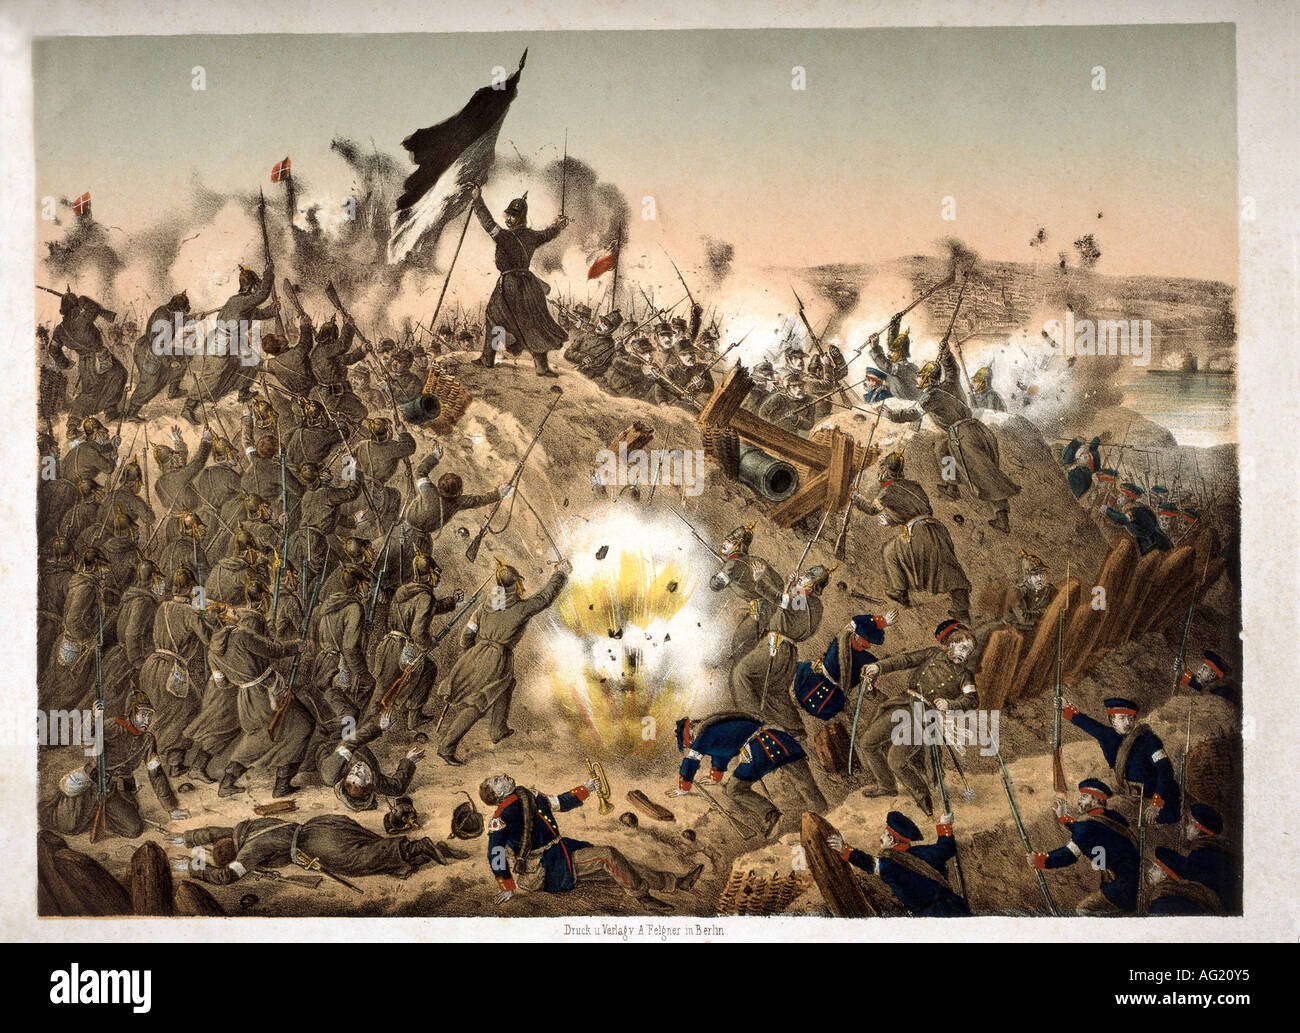 events, Second War of Schleswig 1864, Prussians storming the Dybbel trenches, 18.4.1864, engraving, 19th century, Danish Prussian War, Germany, Denmark, Prussia, battle, prussian soldiers, battle, infantry, attack, warfare, historic, historical, people, Additional-Rights-Clearances-NA - Stock Image